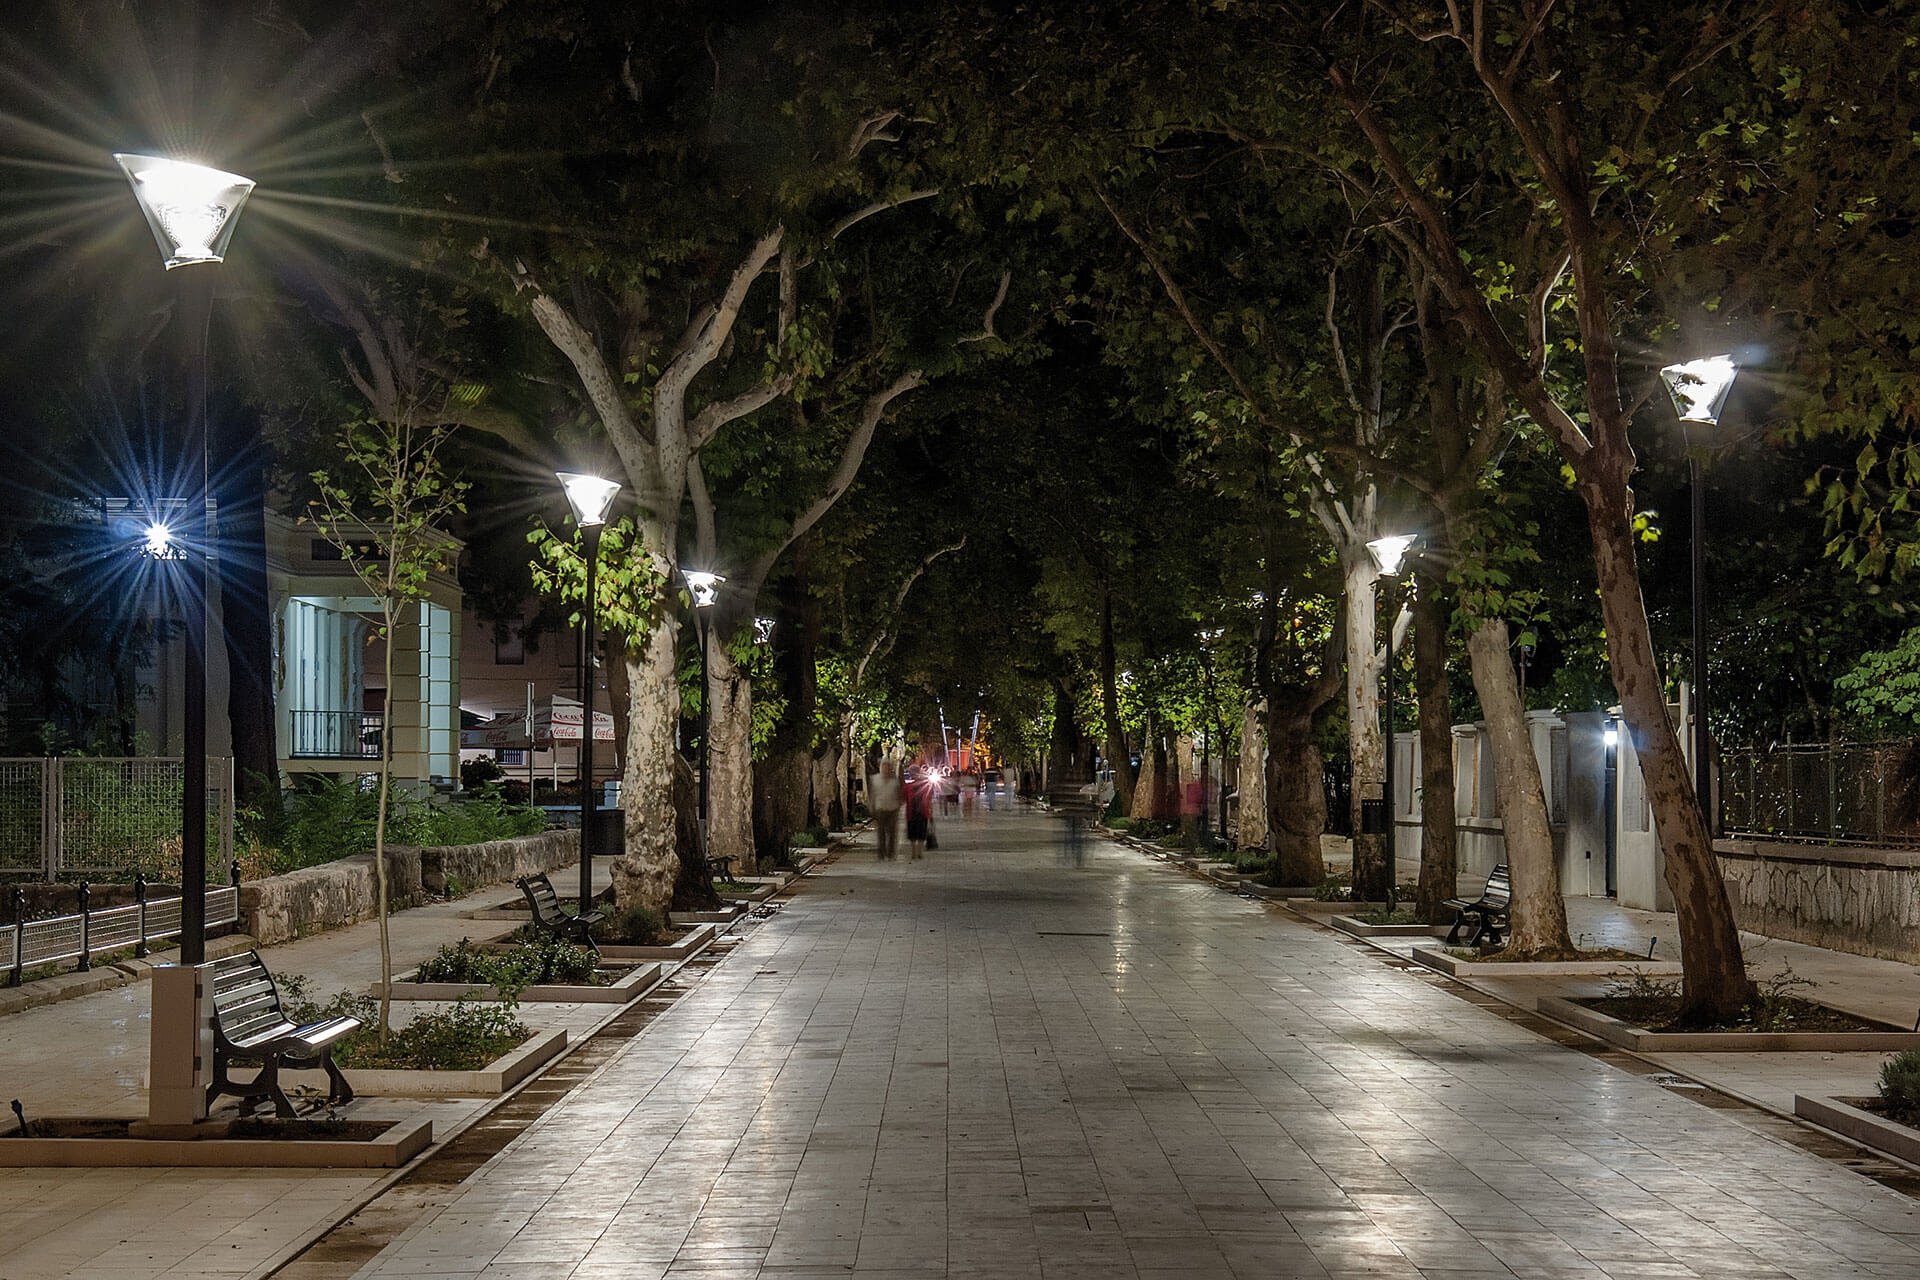 Calla LED creates an inviting nocturnal outdoor space for residents in Mostar while cutting energy consumption